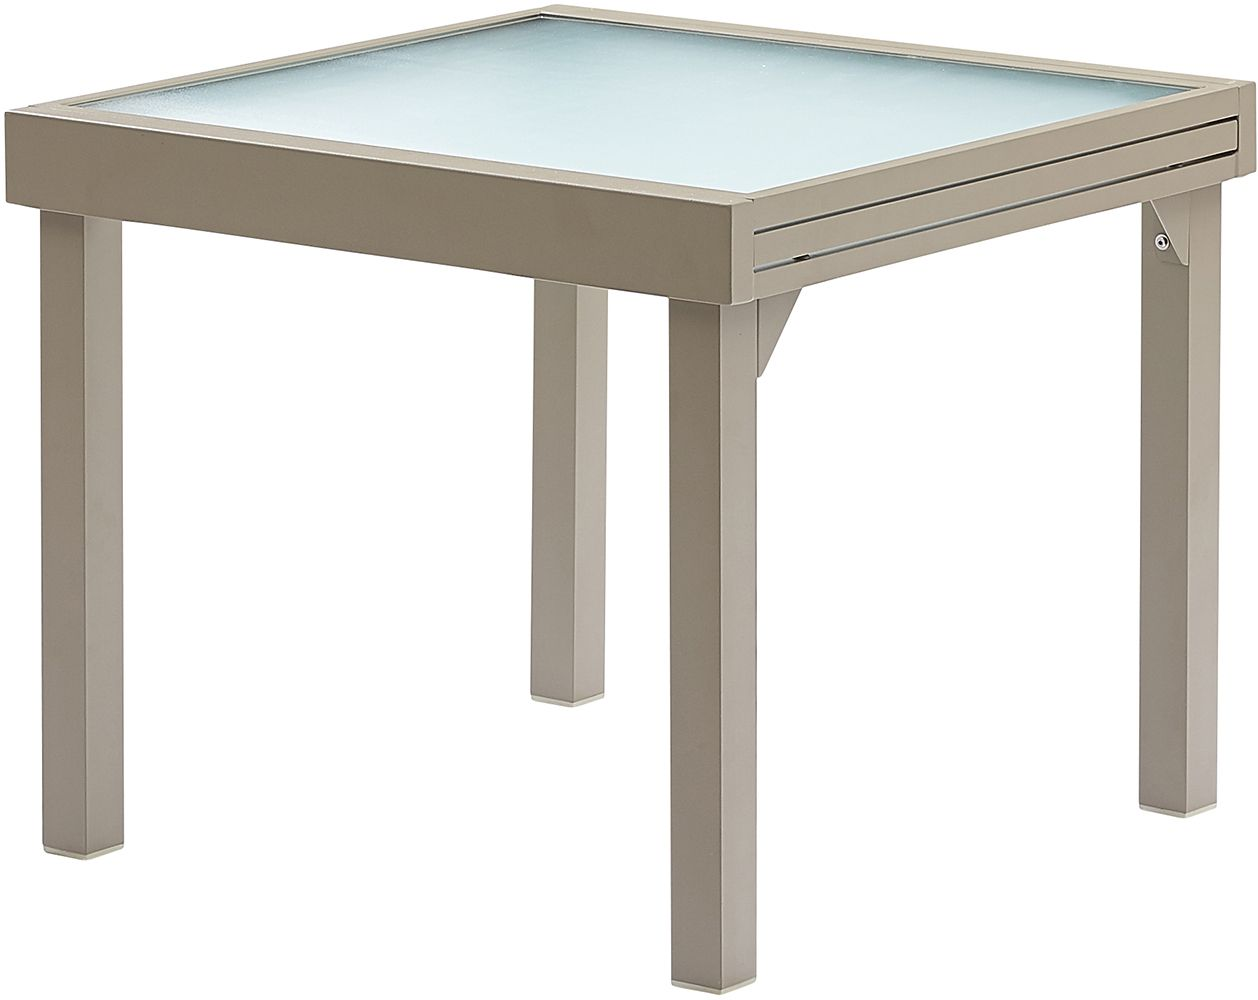 Table jardin modulo 4 8 personnes for Table jardin 8 personnes